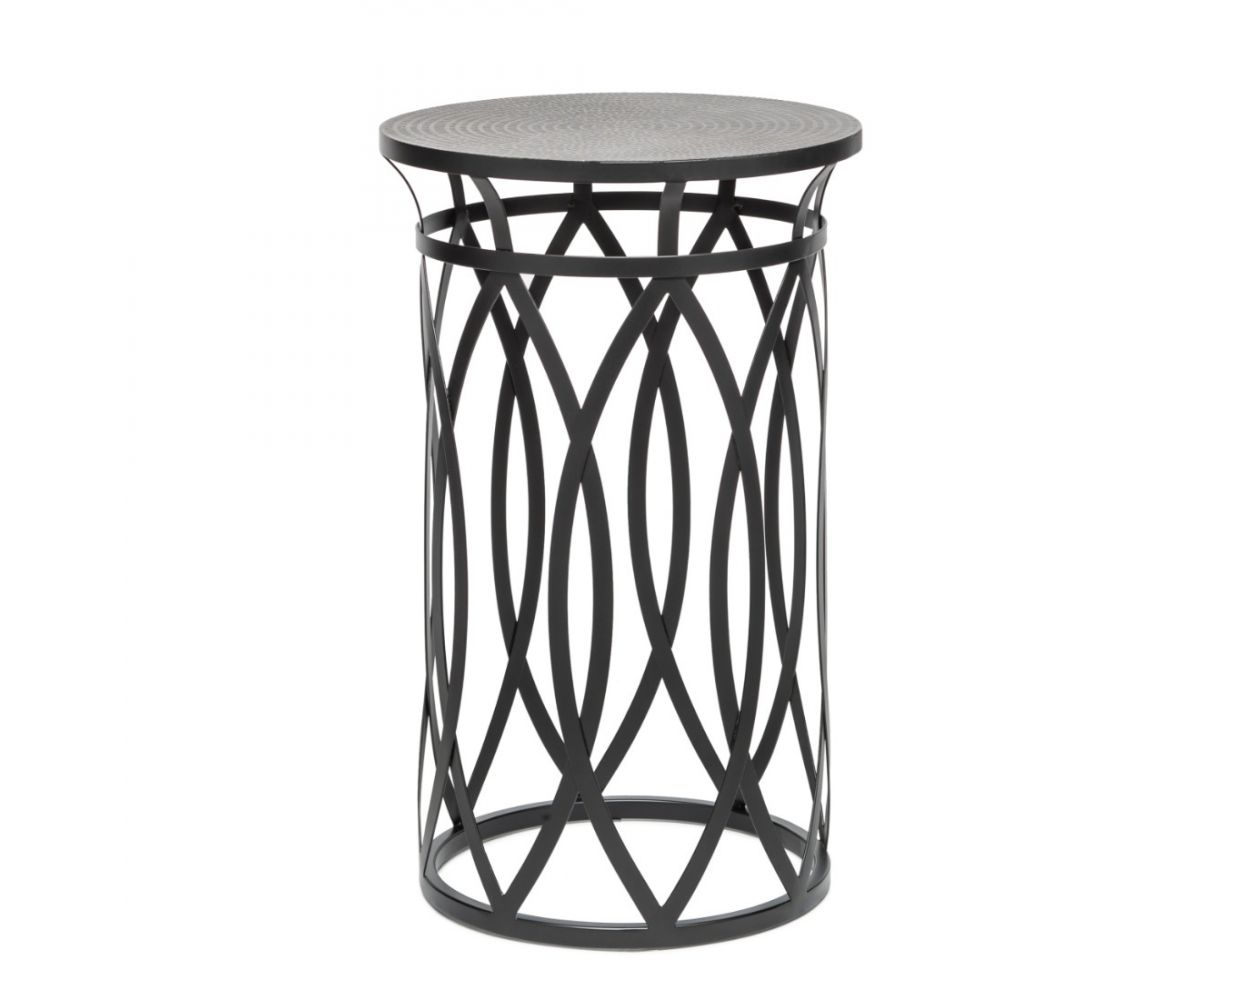 Picture of: Corner End Side Table With Cross Designer Legs Engraved Silver Black Finish Top